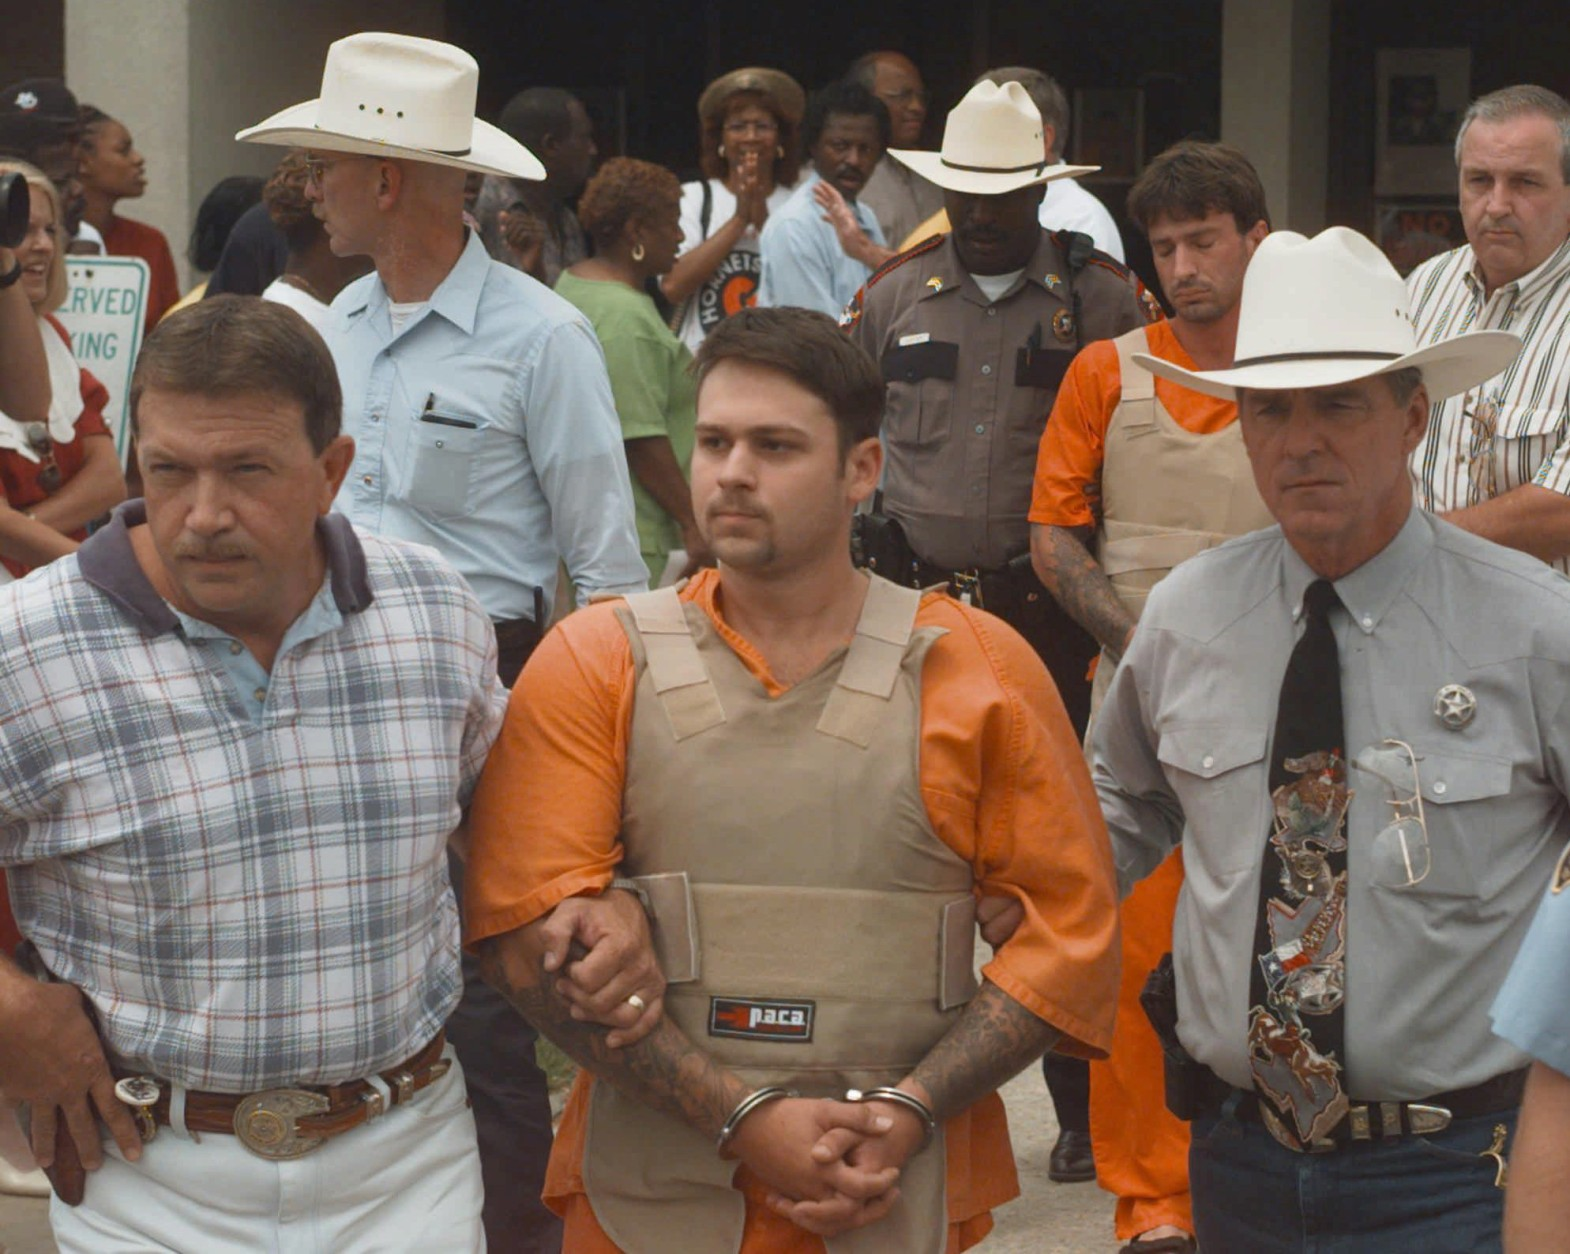 John William King, front, and Lawrence Russell Brewer are escorted from the Jasper County Jail Tuesday, June 9, 1998, in Jasper, Texas. King, Brewer and Shawn Allen Berry are charged with first degree murder in the death of James Byrd Jr.  Byrd Jr. was tied to a truck and dragged to his death along a rural East Texas road. (AP Photo/David J. Phillip)